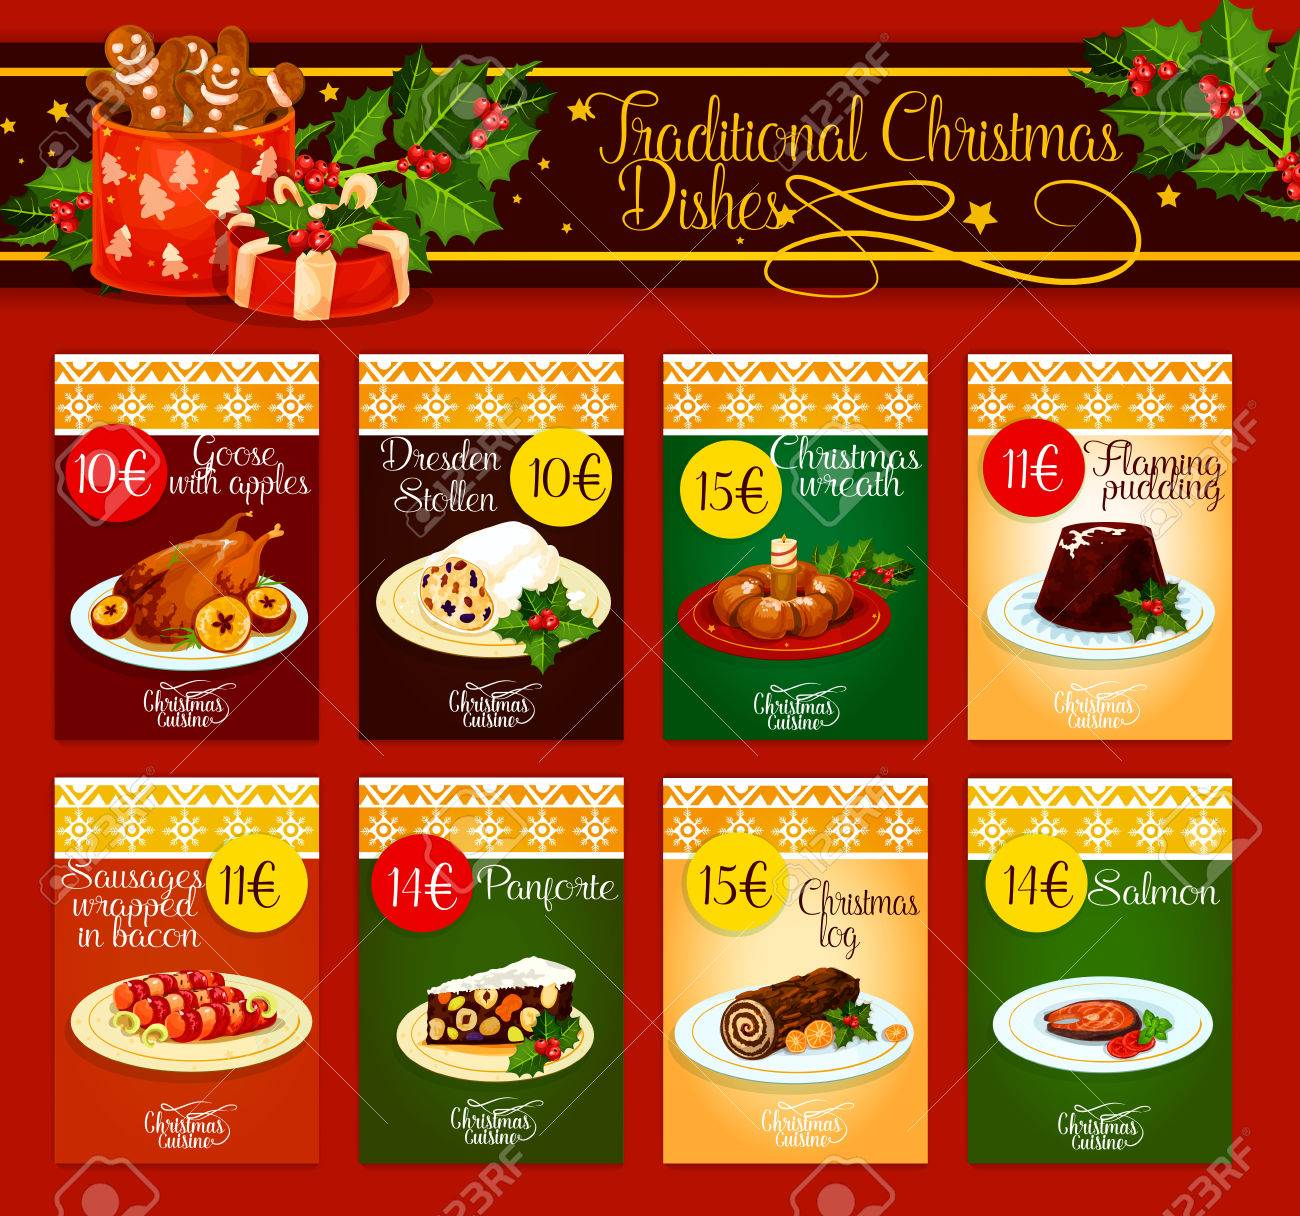 Christmas Dinner Menu Template With Meat, Fish And Pastry Dishes. Christmas  Turkey And Chocolate  Free Christmas Dinner Menu Template